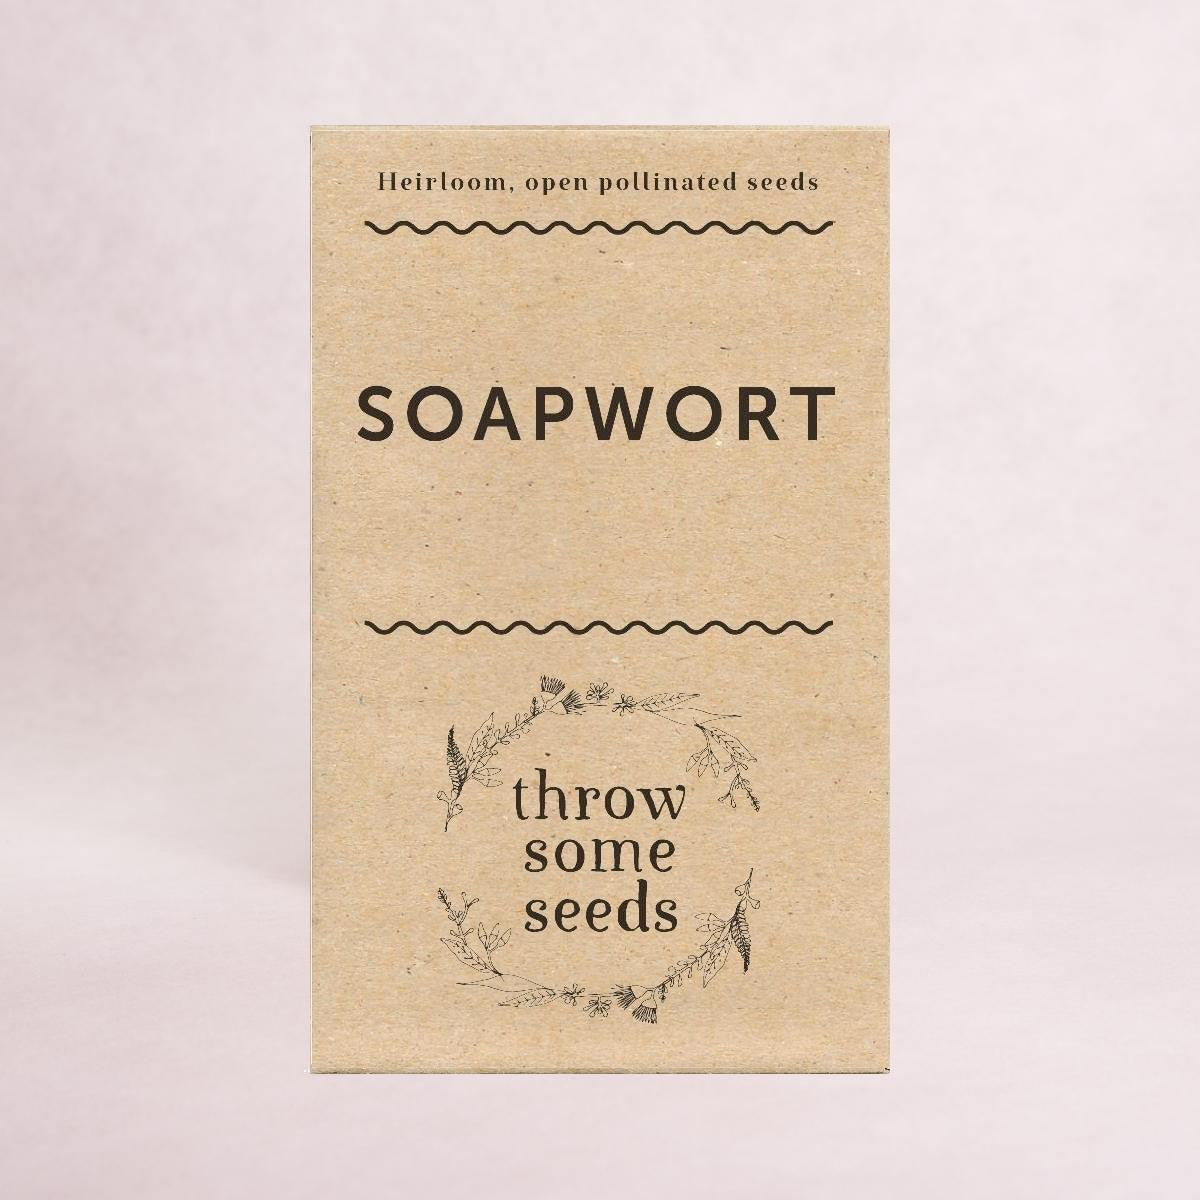 Soapwort Seeds - Seeds - Throw Some Seeds - Australian gardening gifts and eco products online!